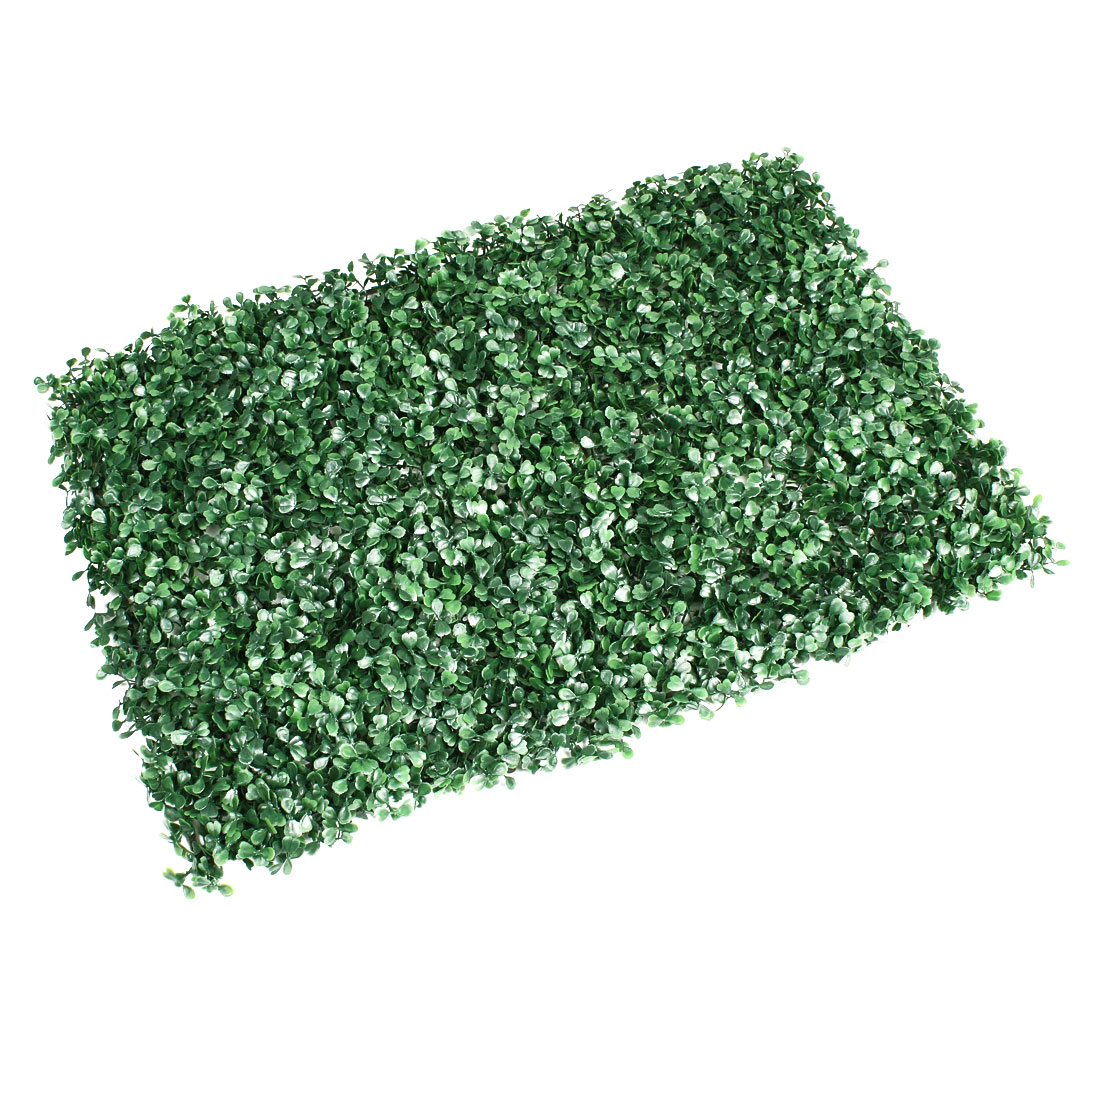 Fish Tank Plastic Base Manmade Rectangle Lawn Grass Plants Green 24 x 16 Inch